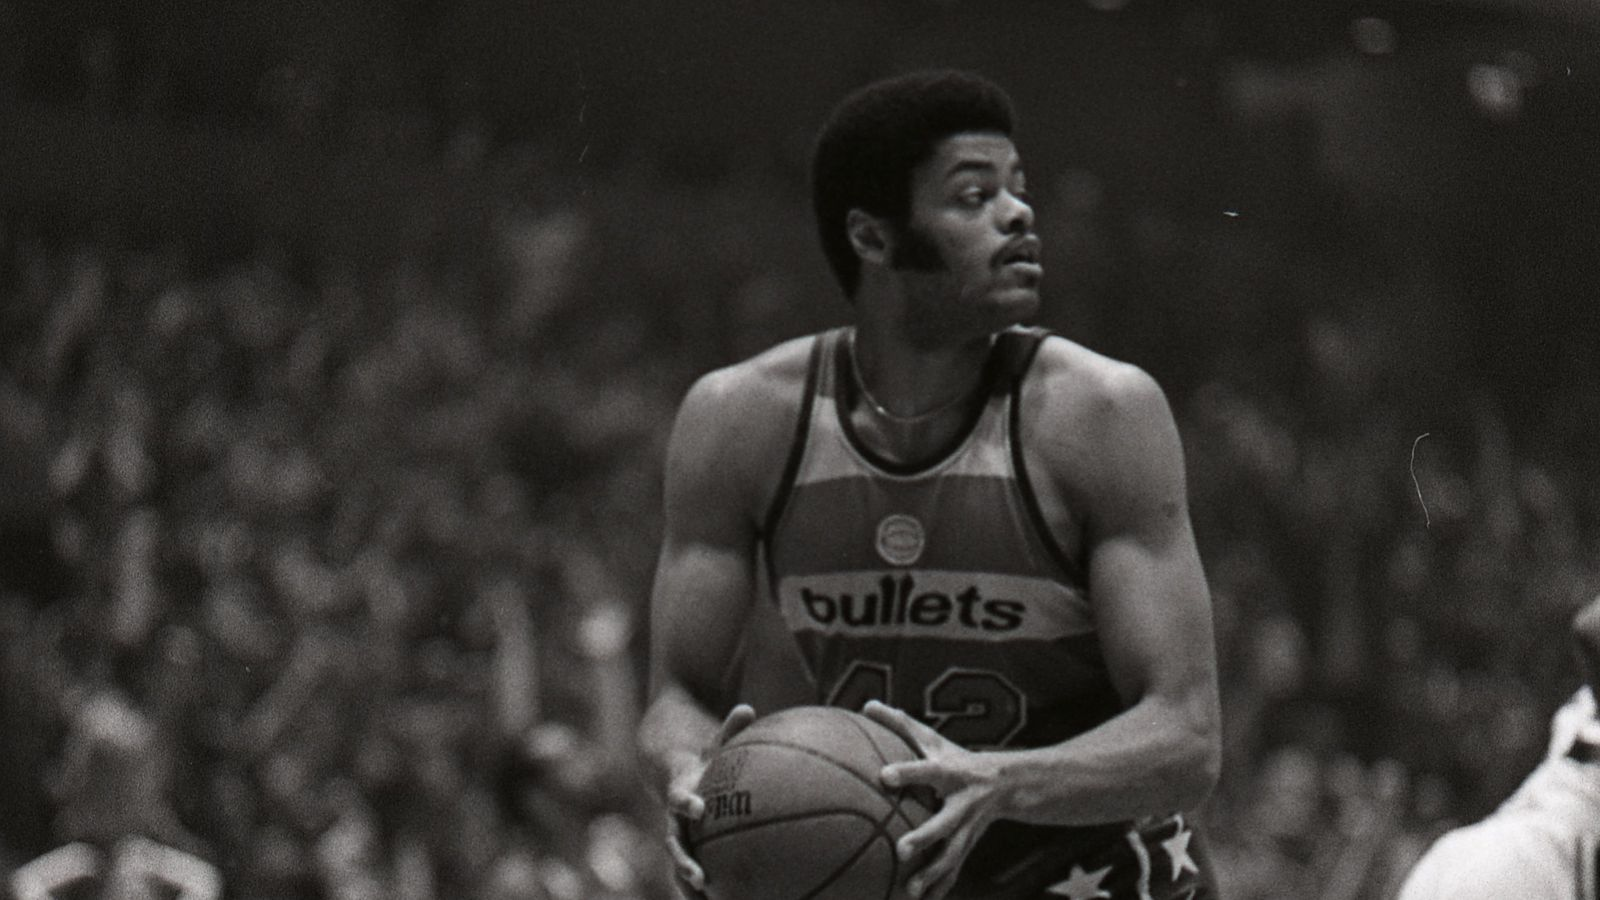 Former Bullet Greg Ballard passes away at age 61 Bullets Forever